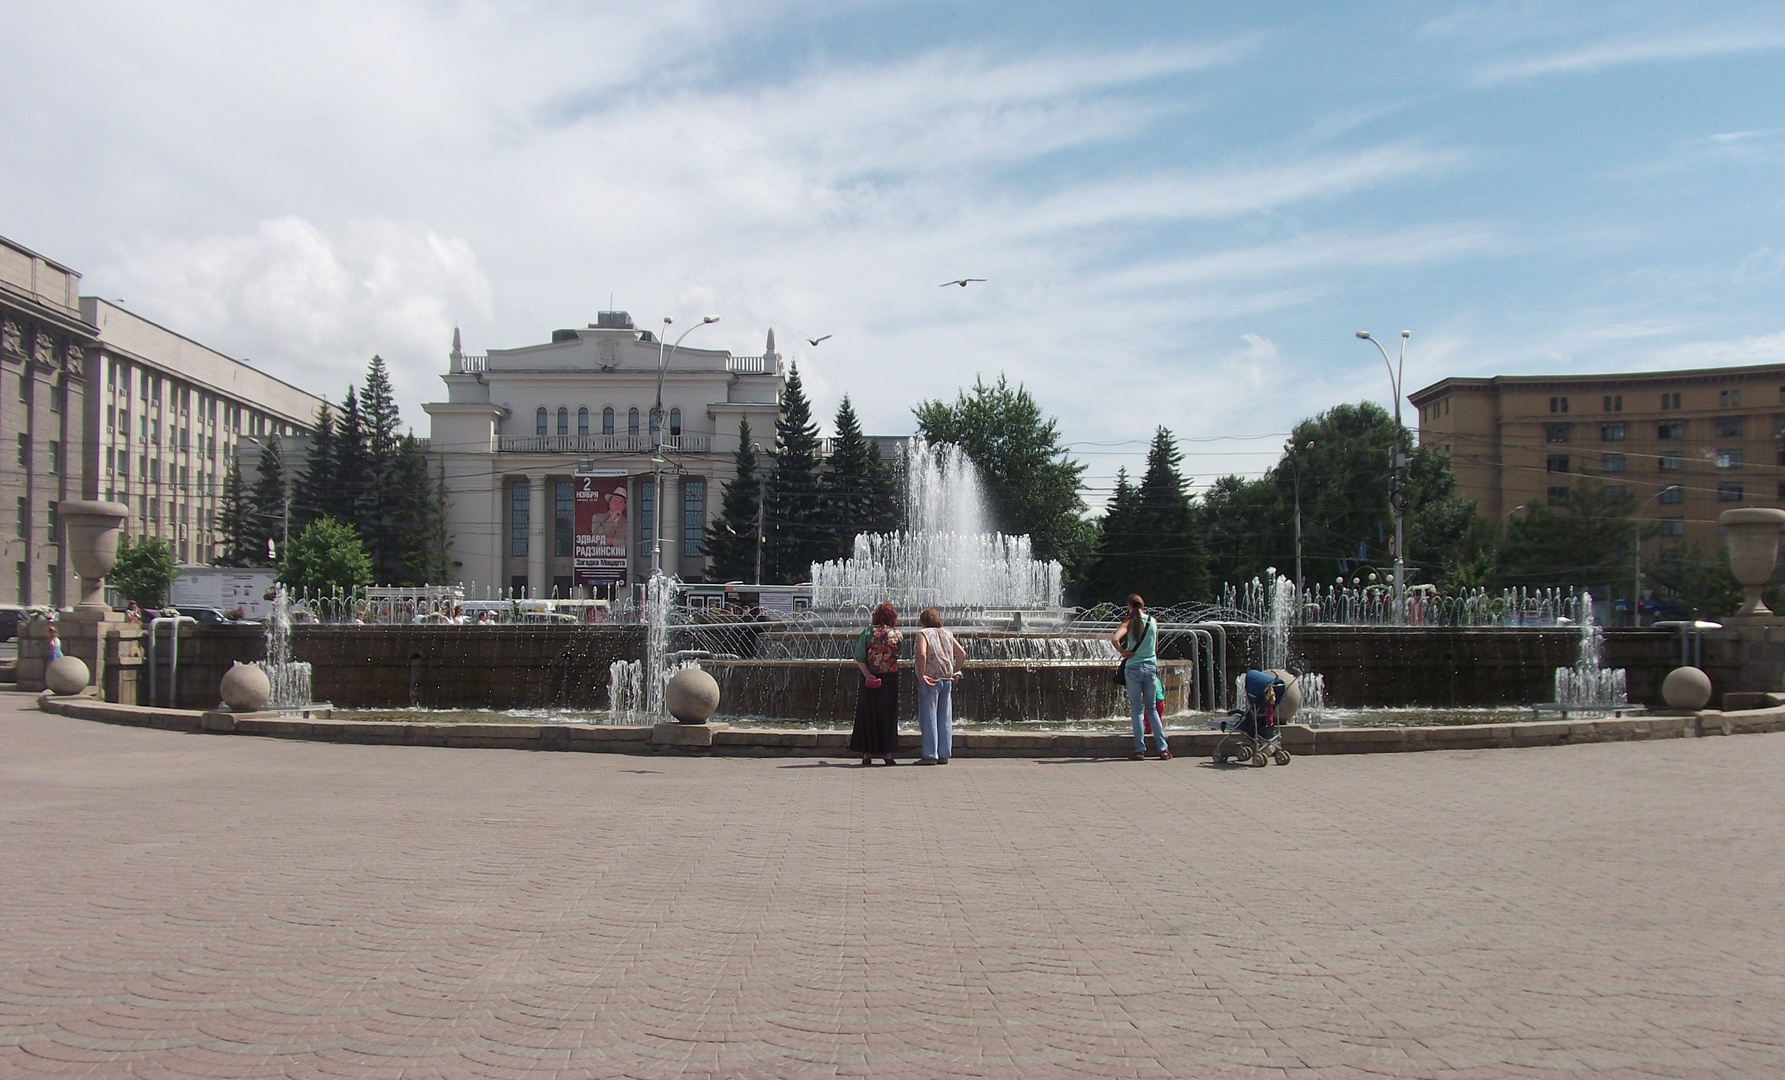 One day in the life of the city of Novosibirsk...